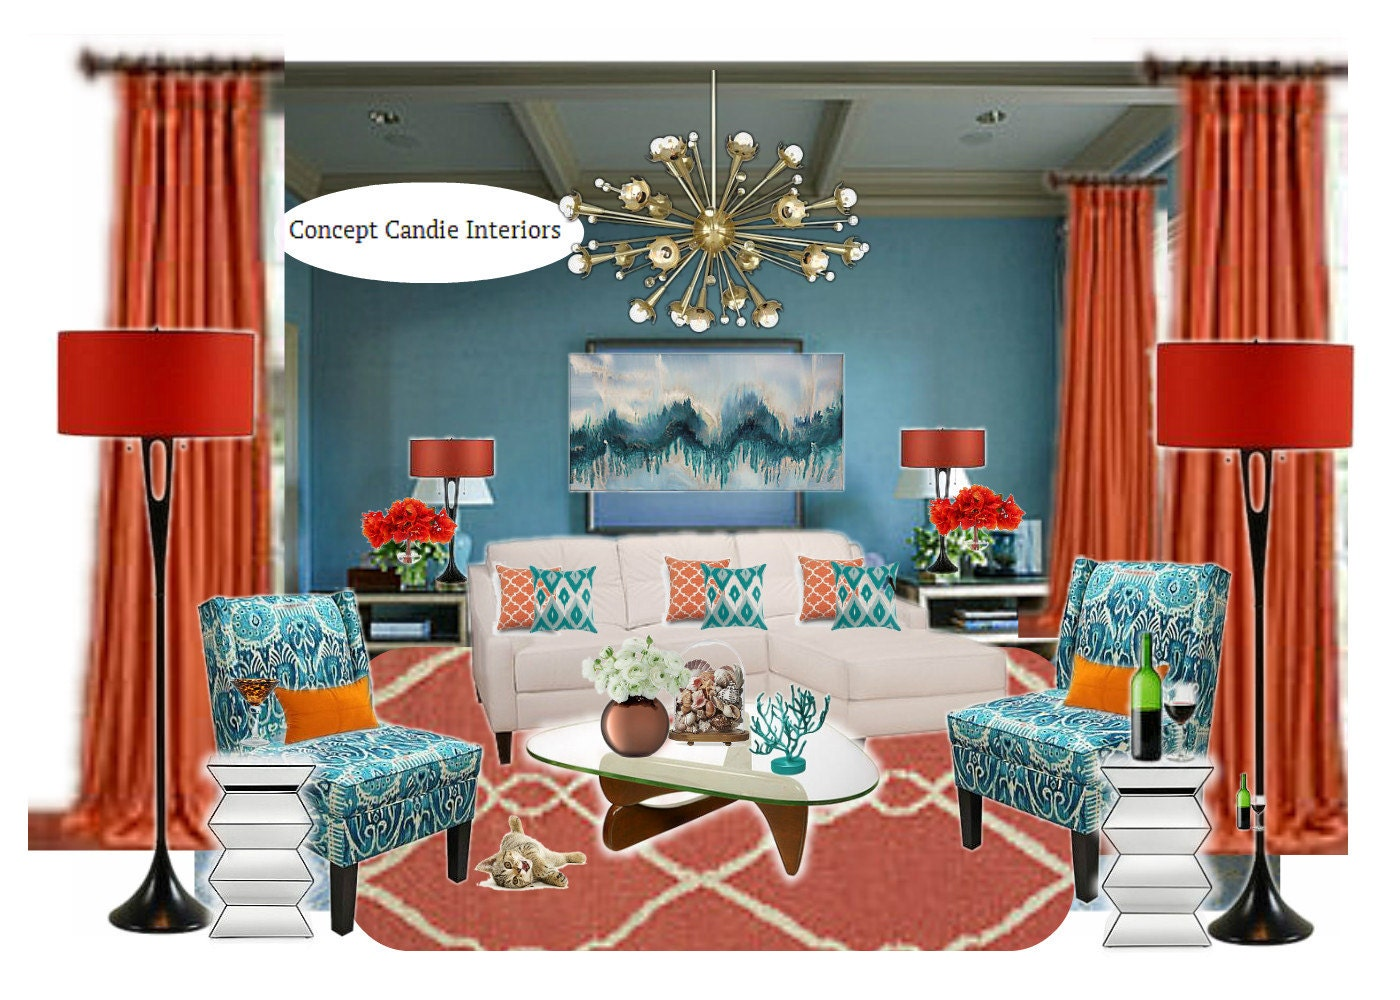 orange and teal living room decor. Black Bedroom Furniture Sets. Home Design Ideas